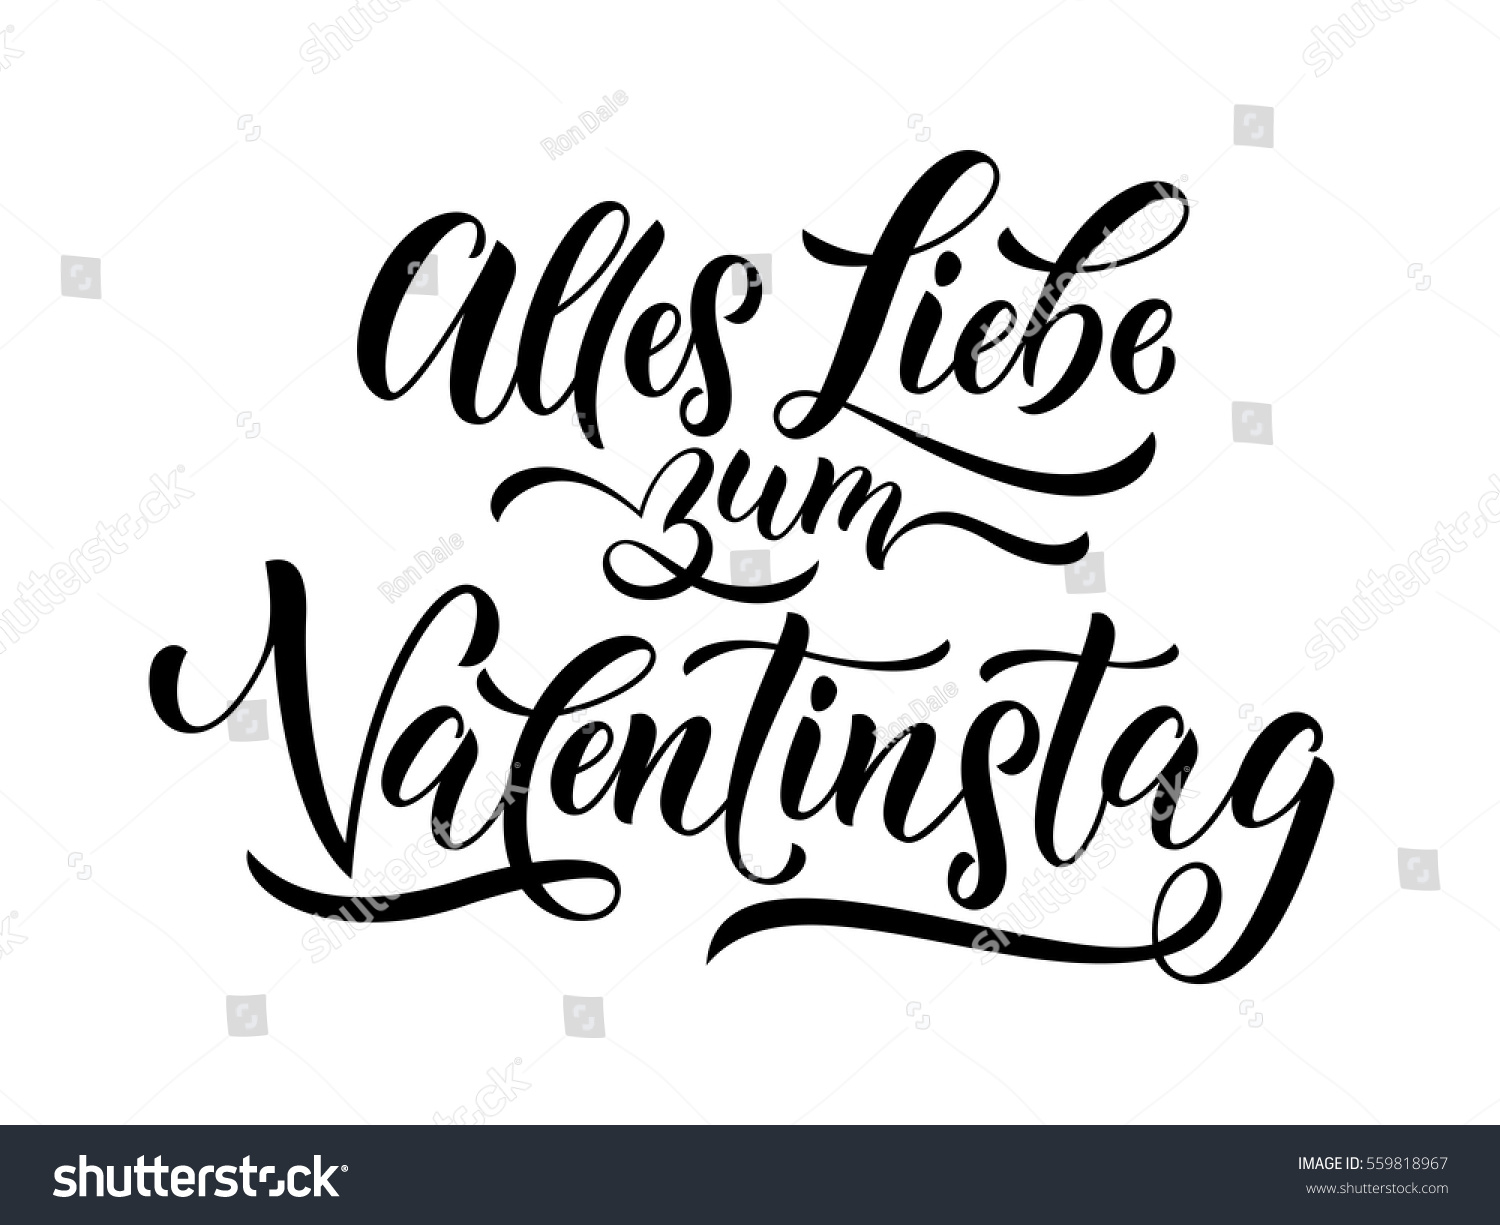 German Valentines Day Text Alles Liebe Zum Valentinstag Lettering For  Premium White Greeting Card.